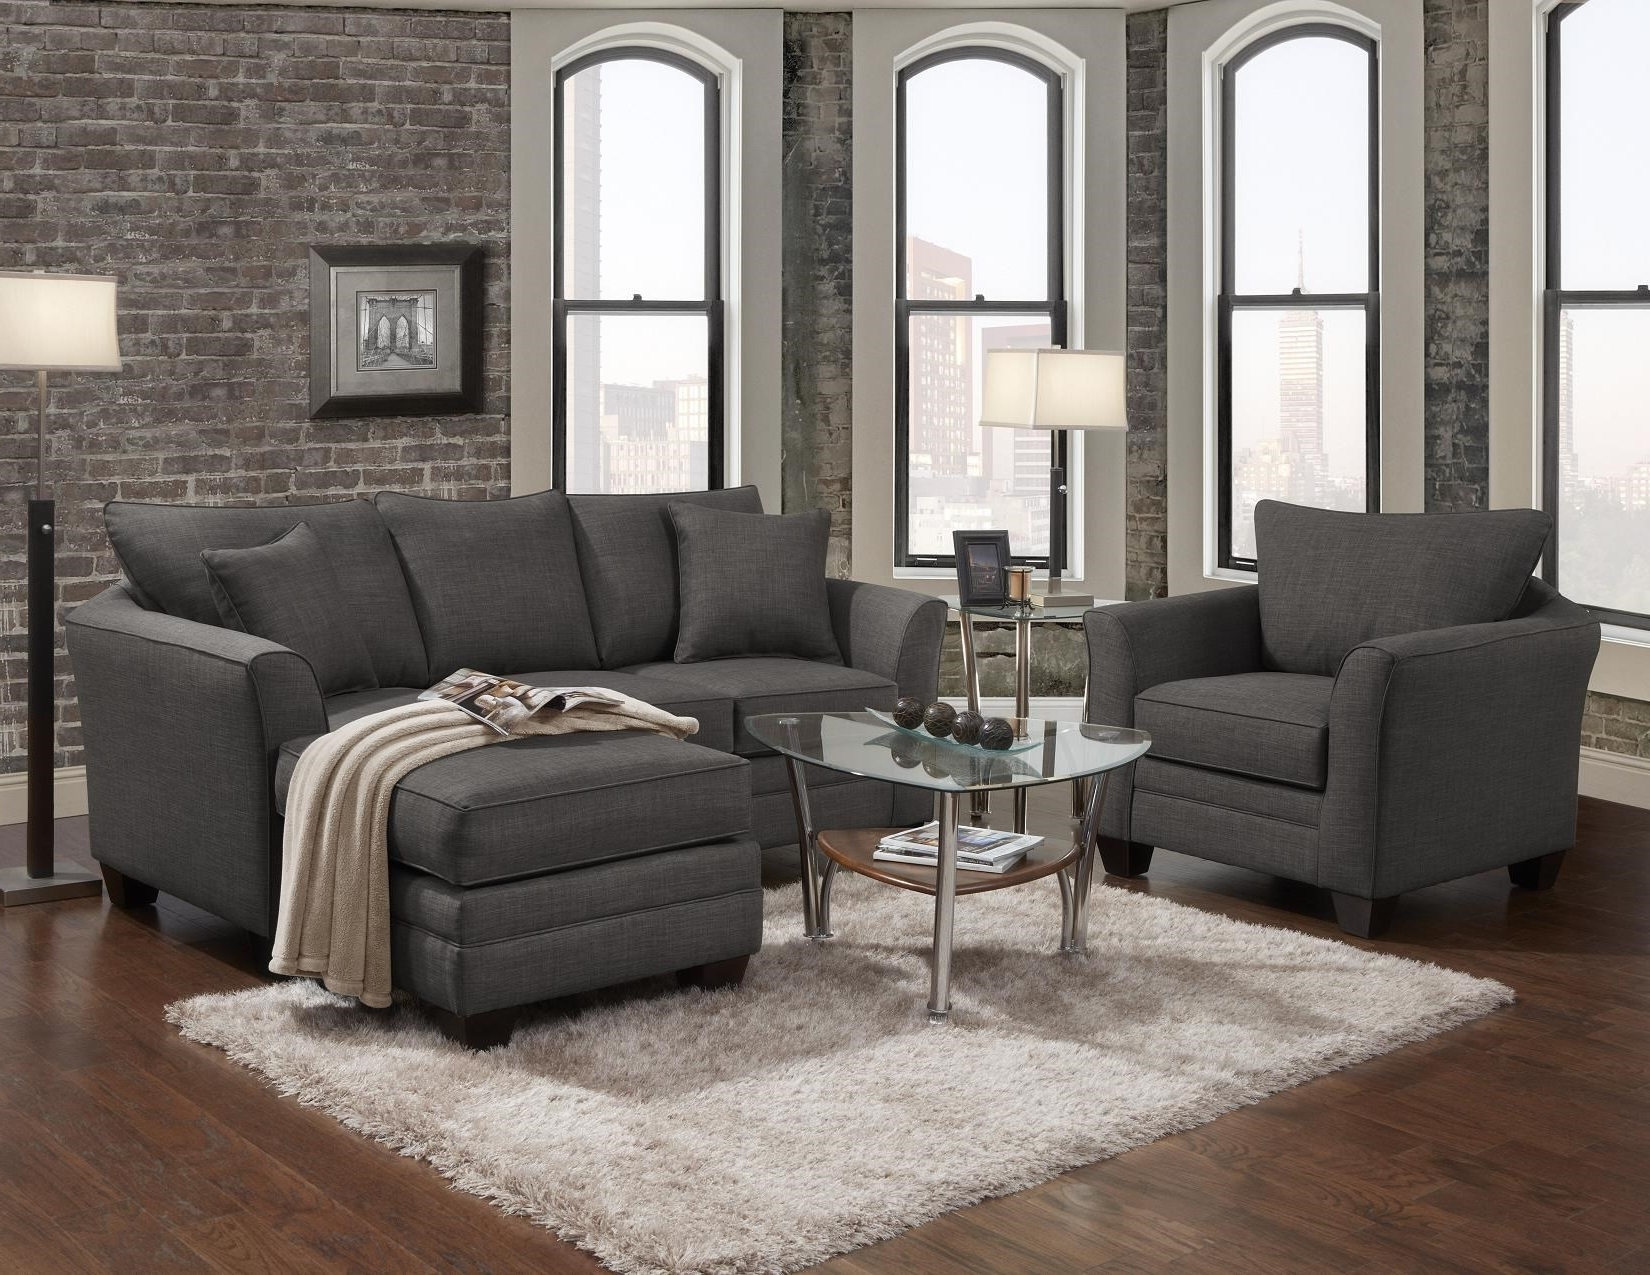 Gardiners Sectional Sofas Throughout Well Known Shop Sectionals (View 7 of 20)